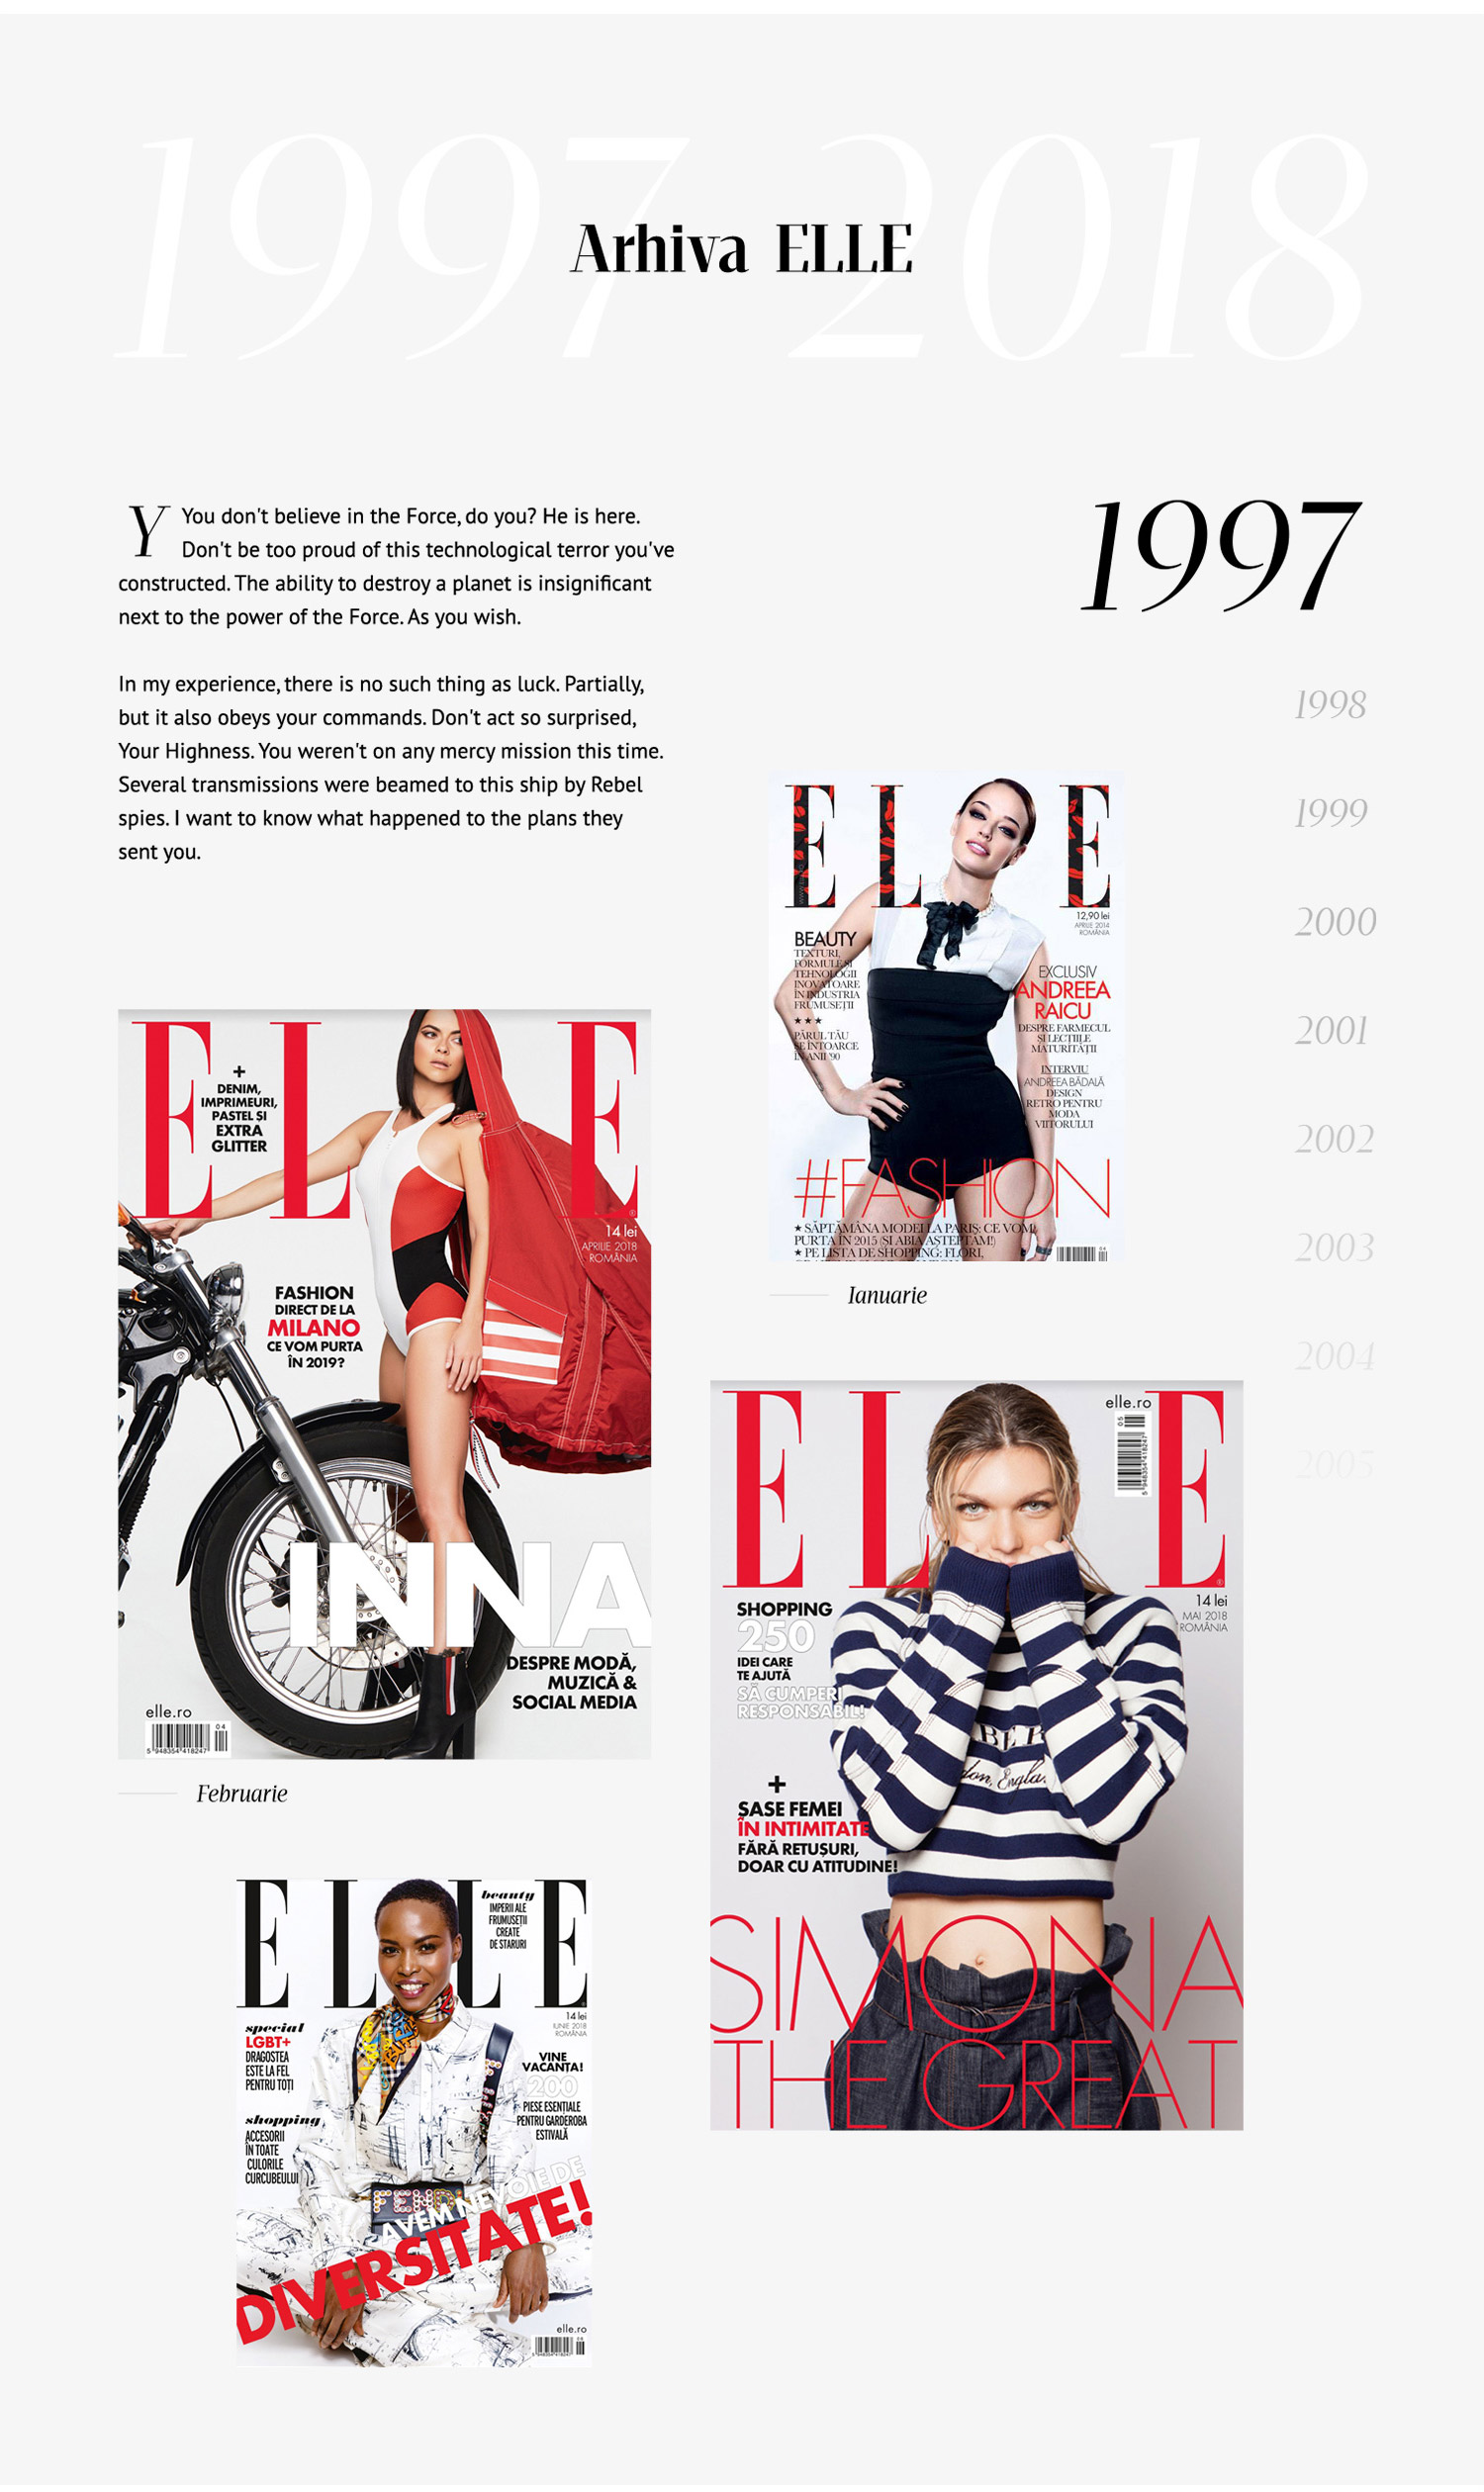 ELLE-Magazine-issue-archive